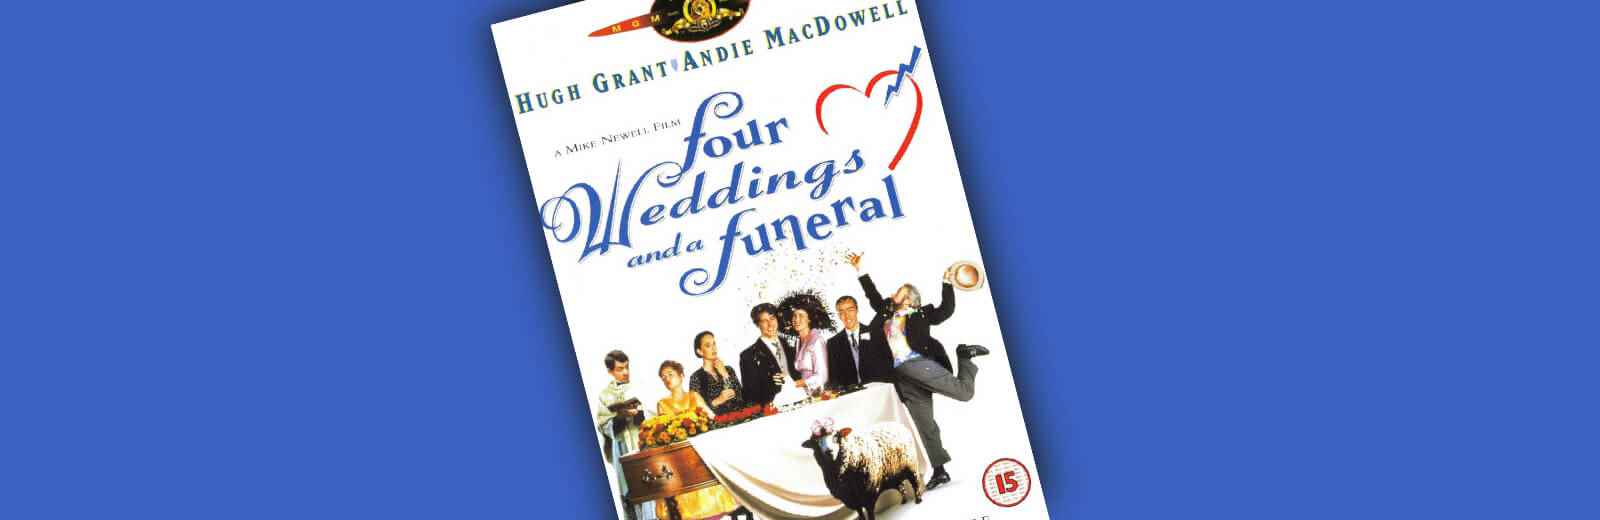 Four Weddings and a Funeral (15)